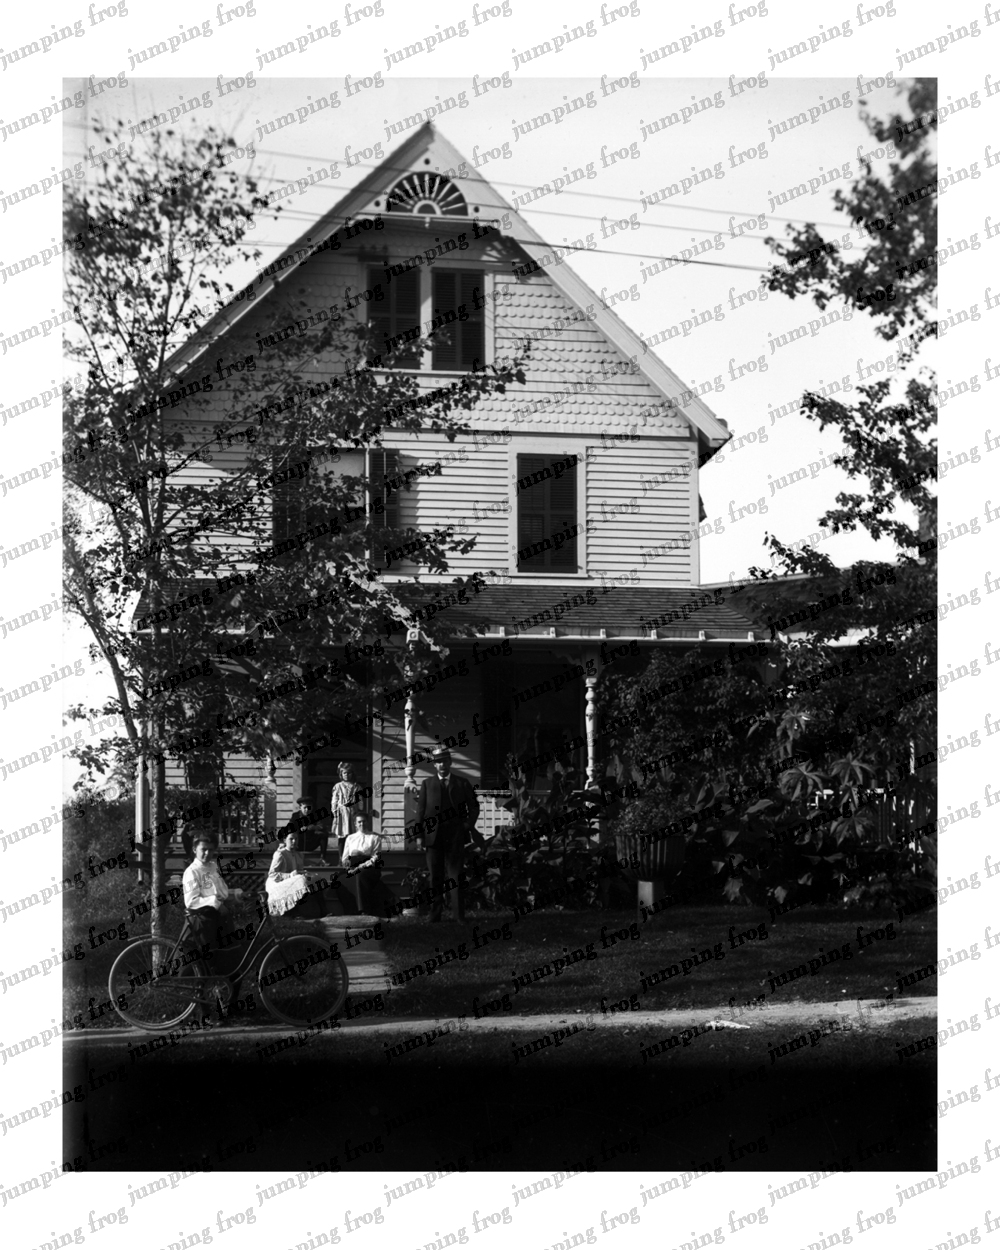 Girl's bicycle & family & homestead 8x10 ca 1890s